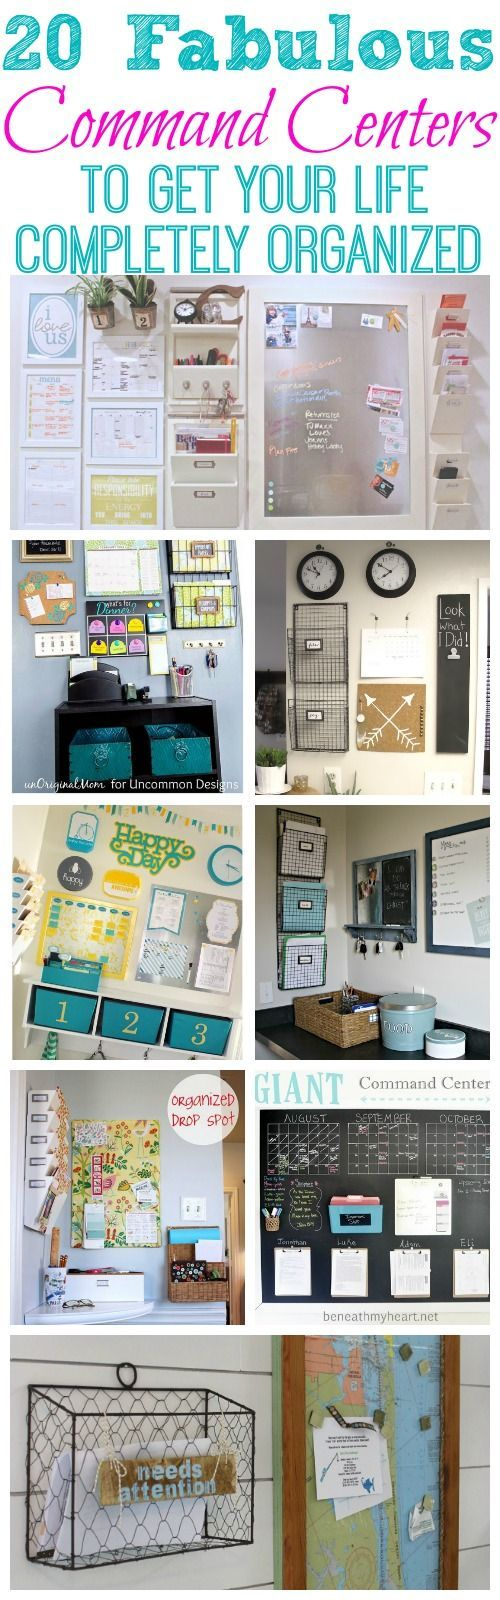 20 Fabulous Command Centers to Get Your Life Completely Organized at The Happy Housie 2 #homeorganizationideas